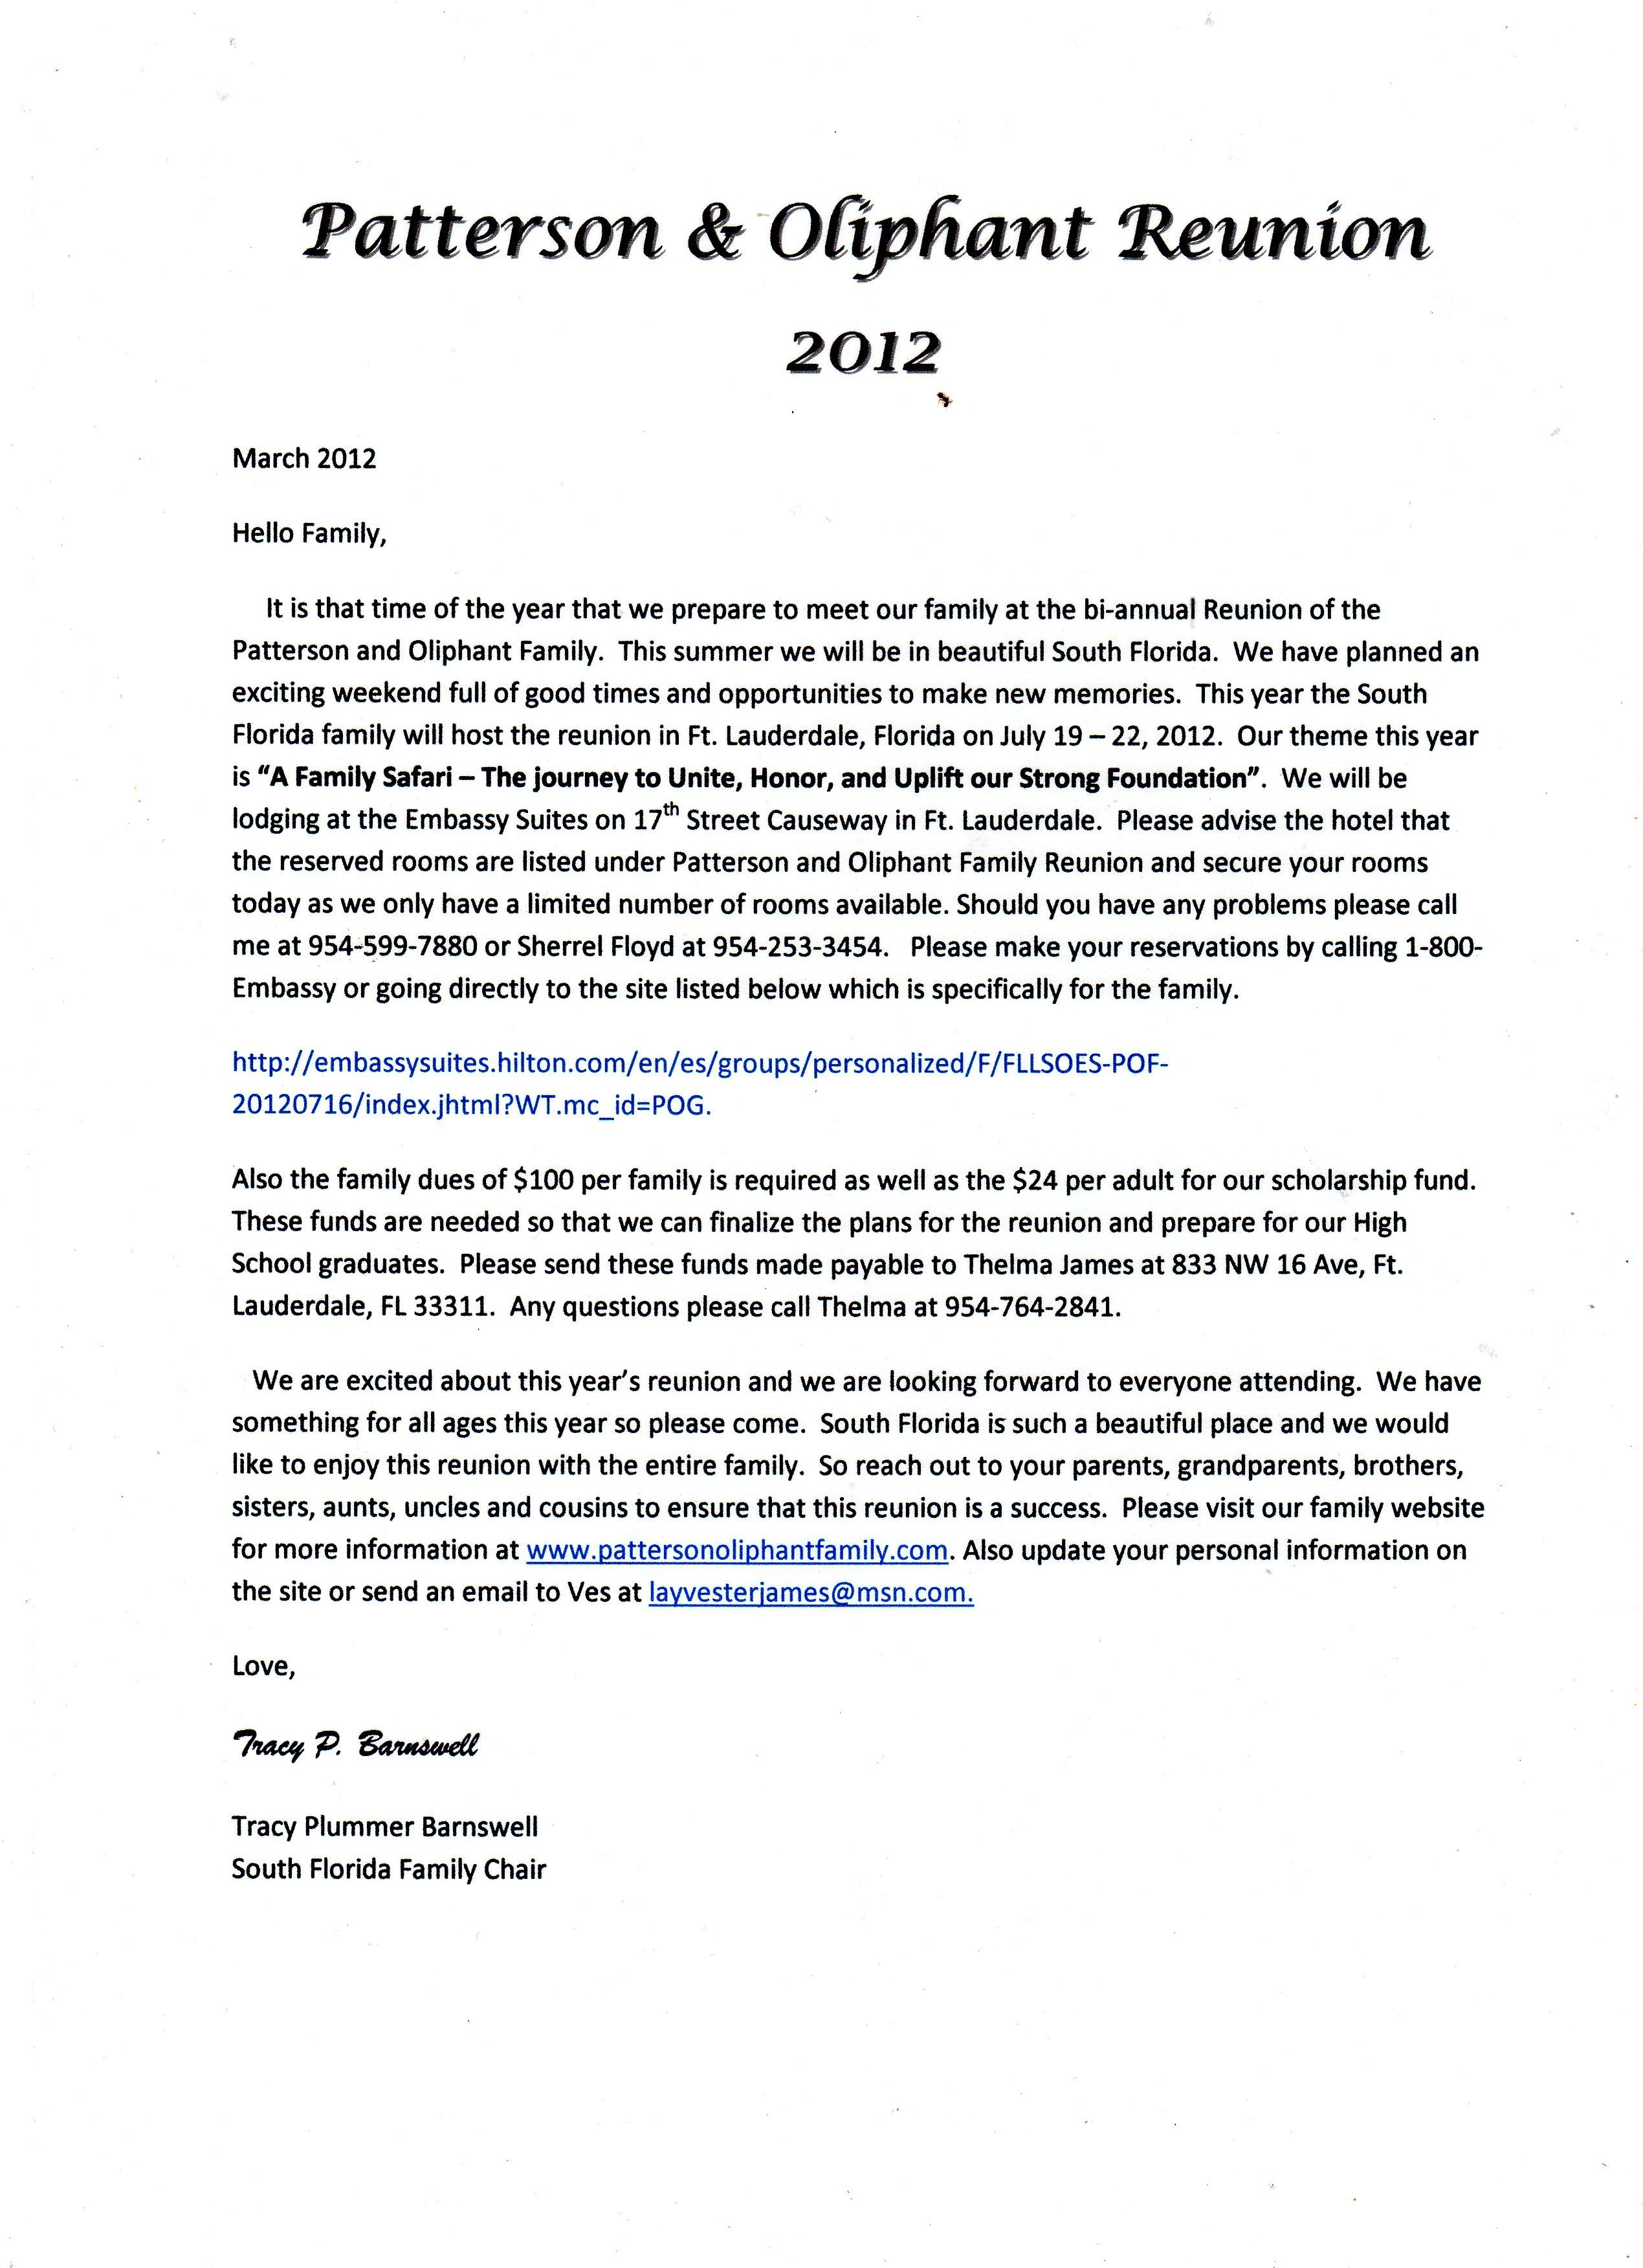 Sample Family Reunion Donation Request Letter | mamiihondenk org